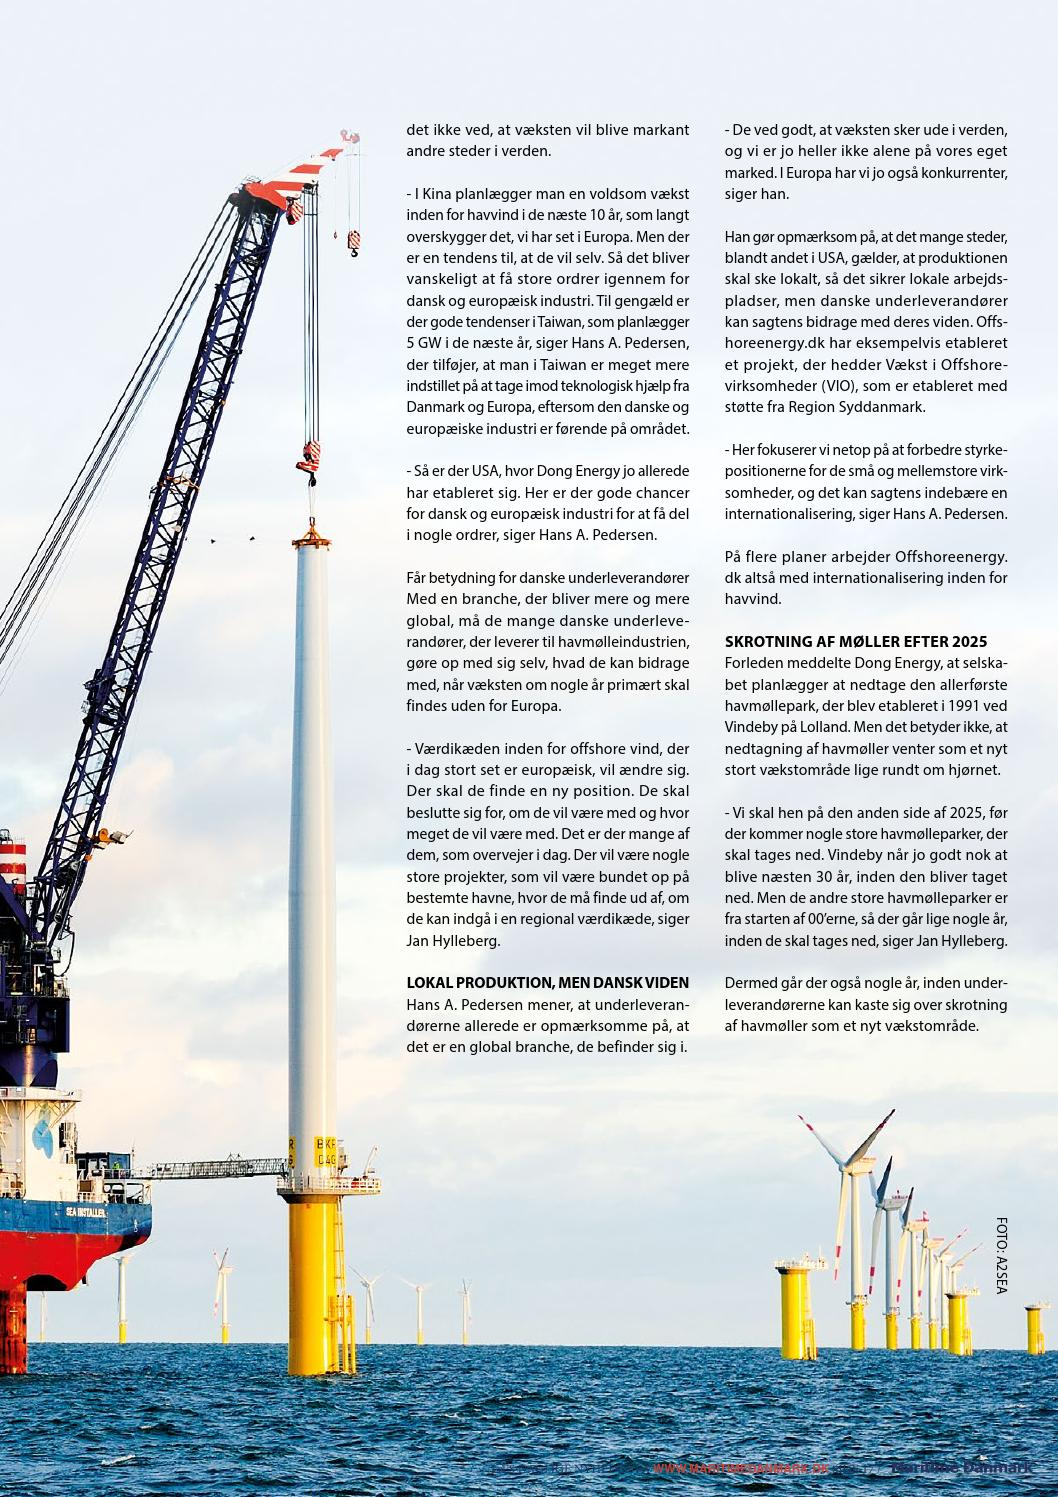 7b94e49d6d34 Maritimedanmark 3 16 by Media Group Maritime Denmark - issuu